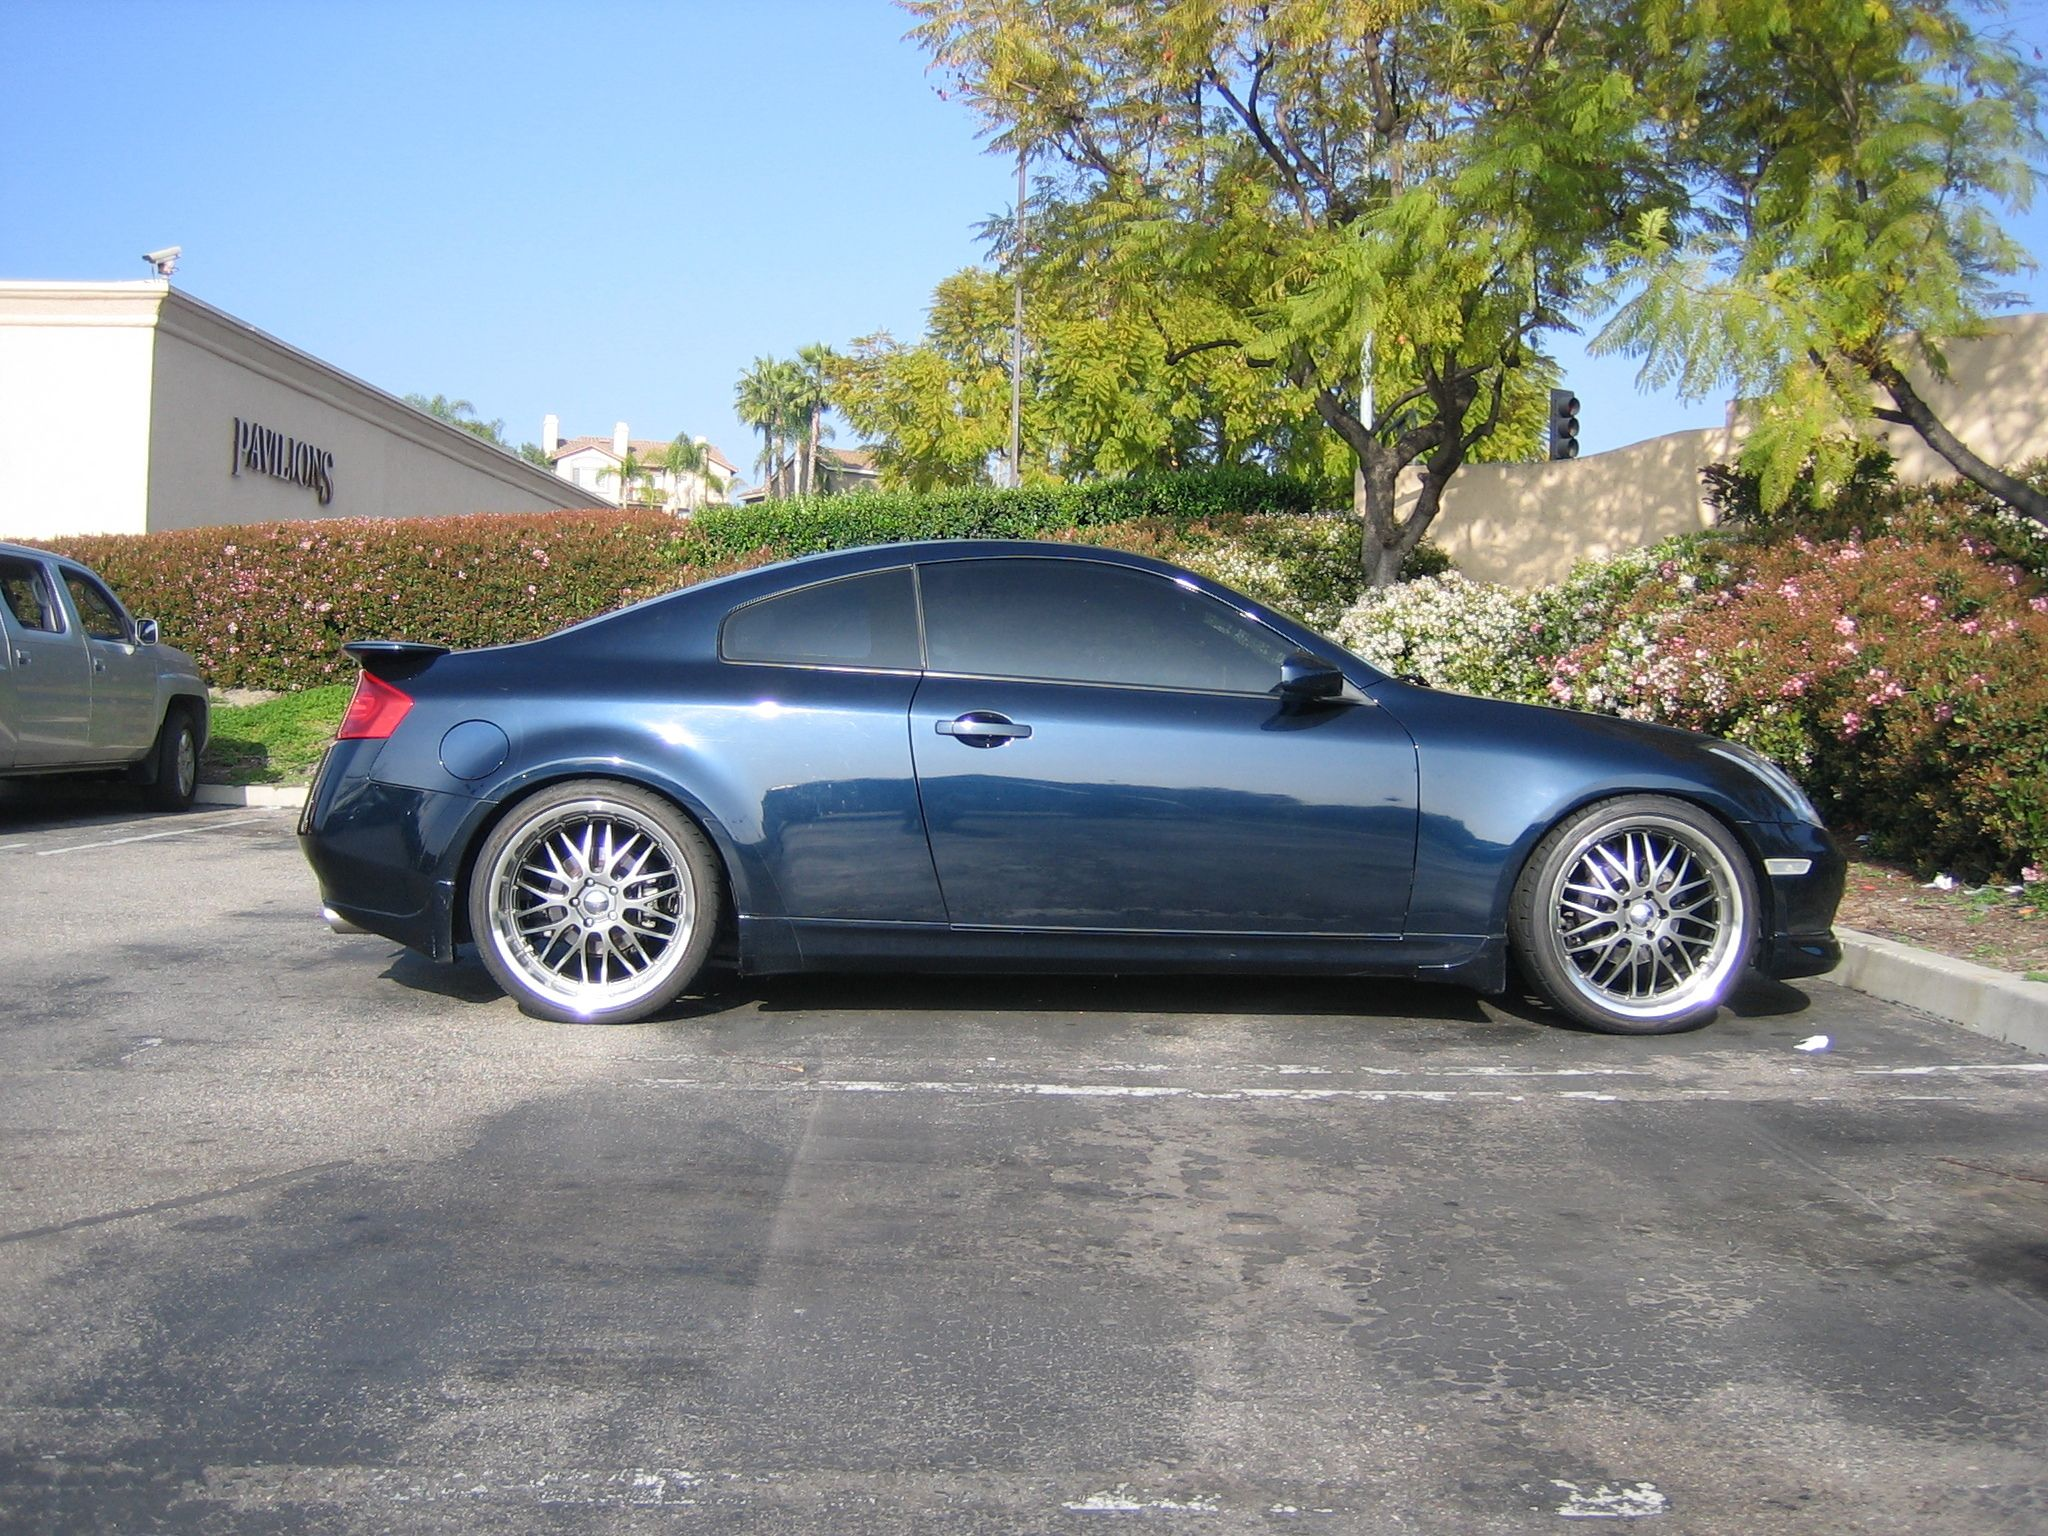 2004 infiniti g35 coupe twilight blue google search. Black Bedroom Furniture Sets. Home Design Ideas